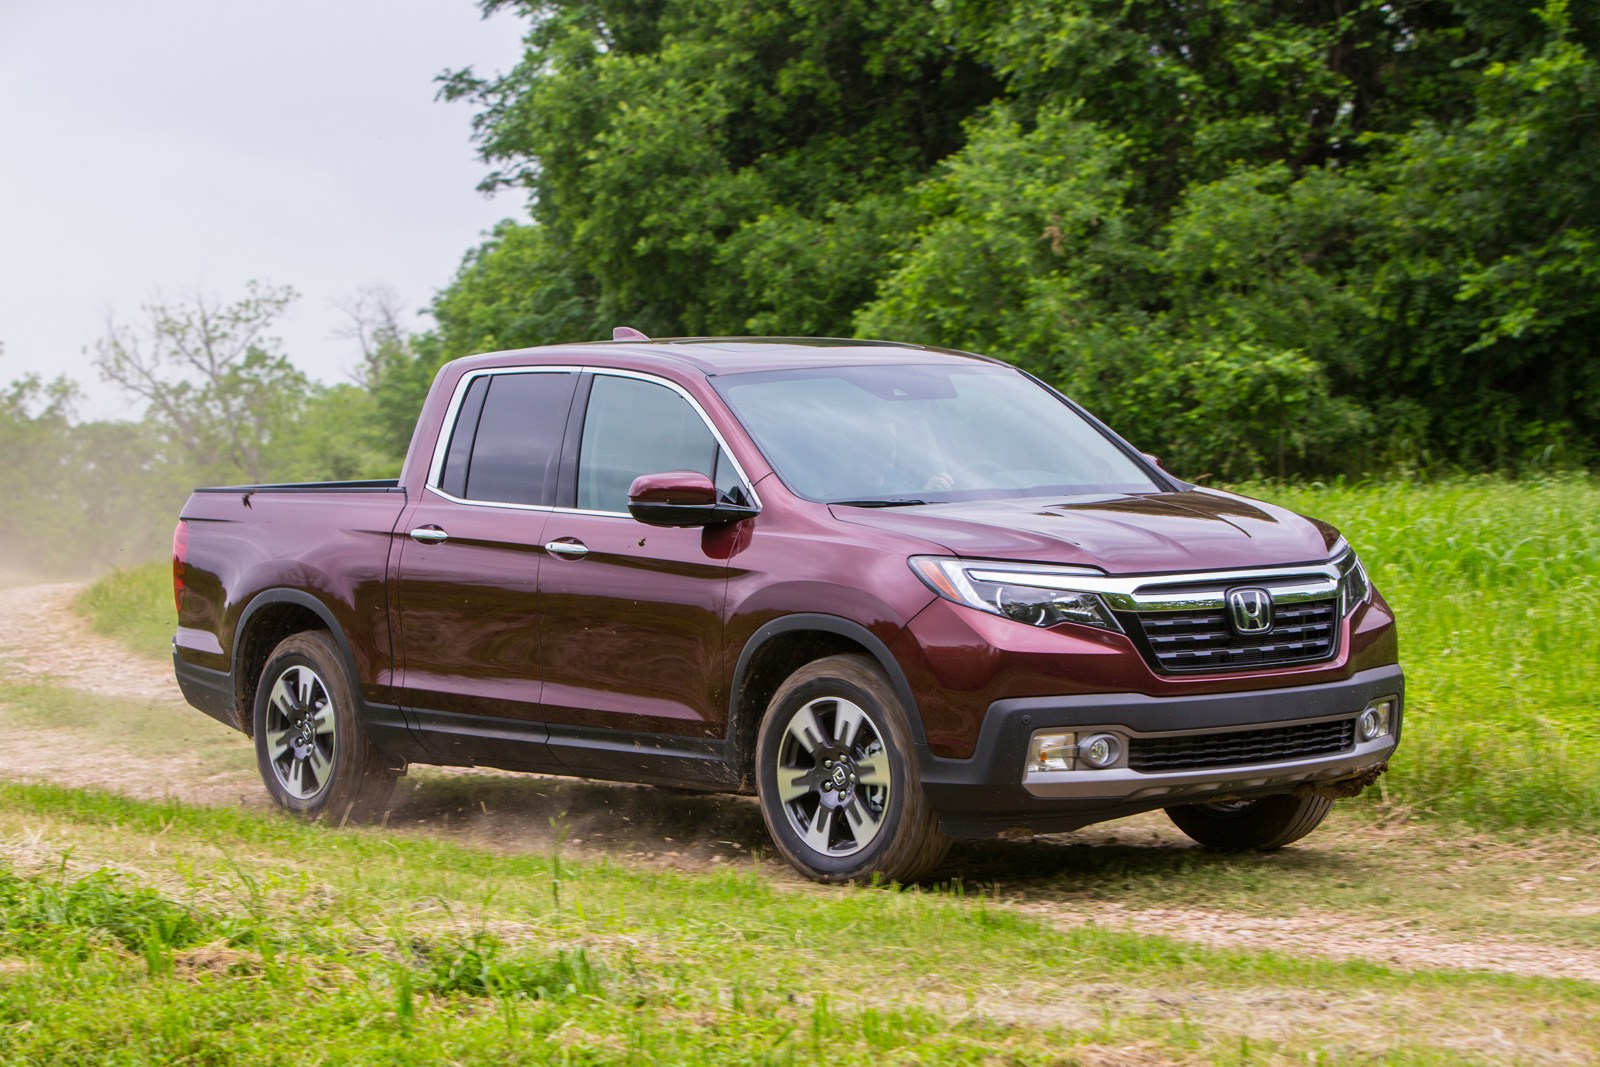 The most american made car from honda is the ridgeline pickup truck built in lincoln alabama the ridgeline was not on the list last year